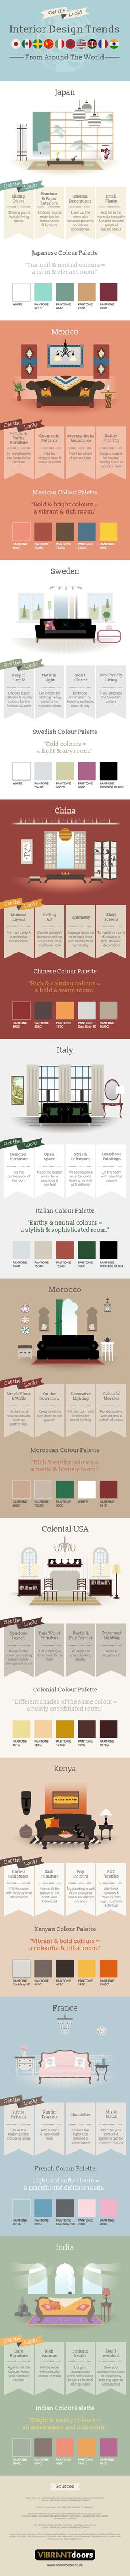 Infographic: Interior Design Trends From All Around The World - DesignTAXI.com